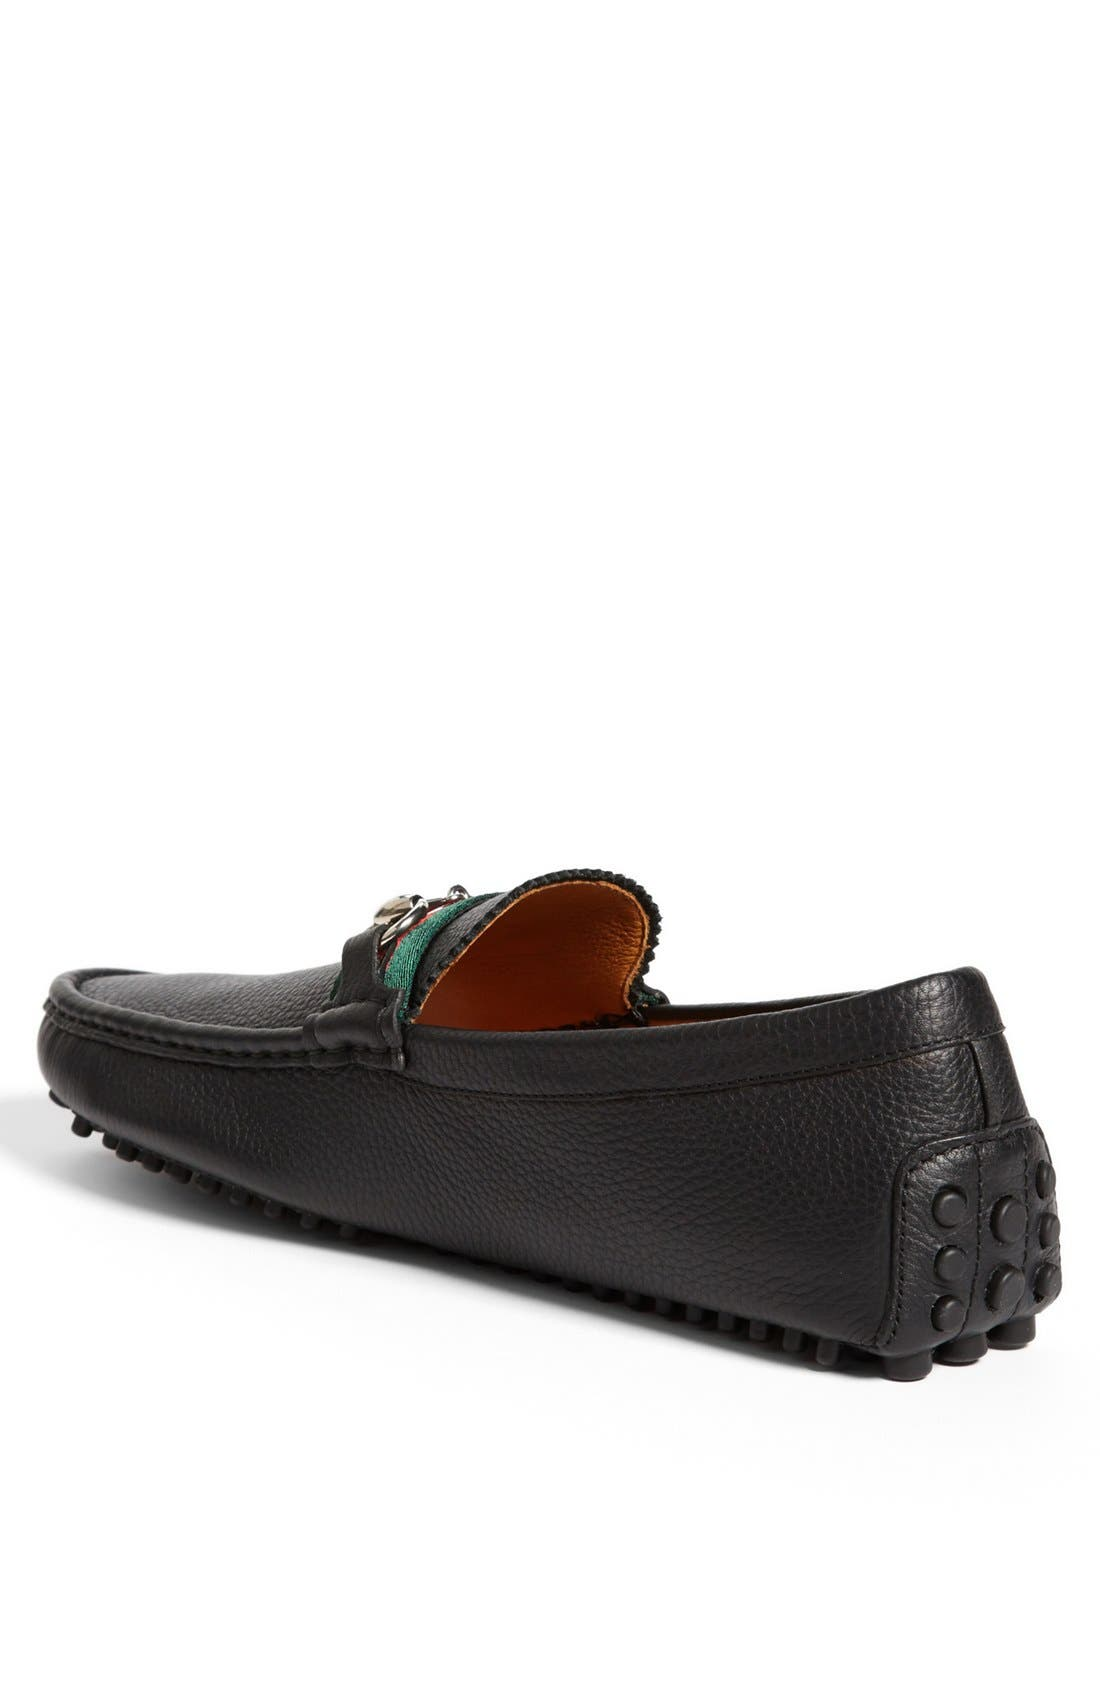 Alternate Image 2  - Gucci 'Damo' Driving Shoe (Men)